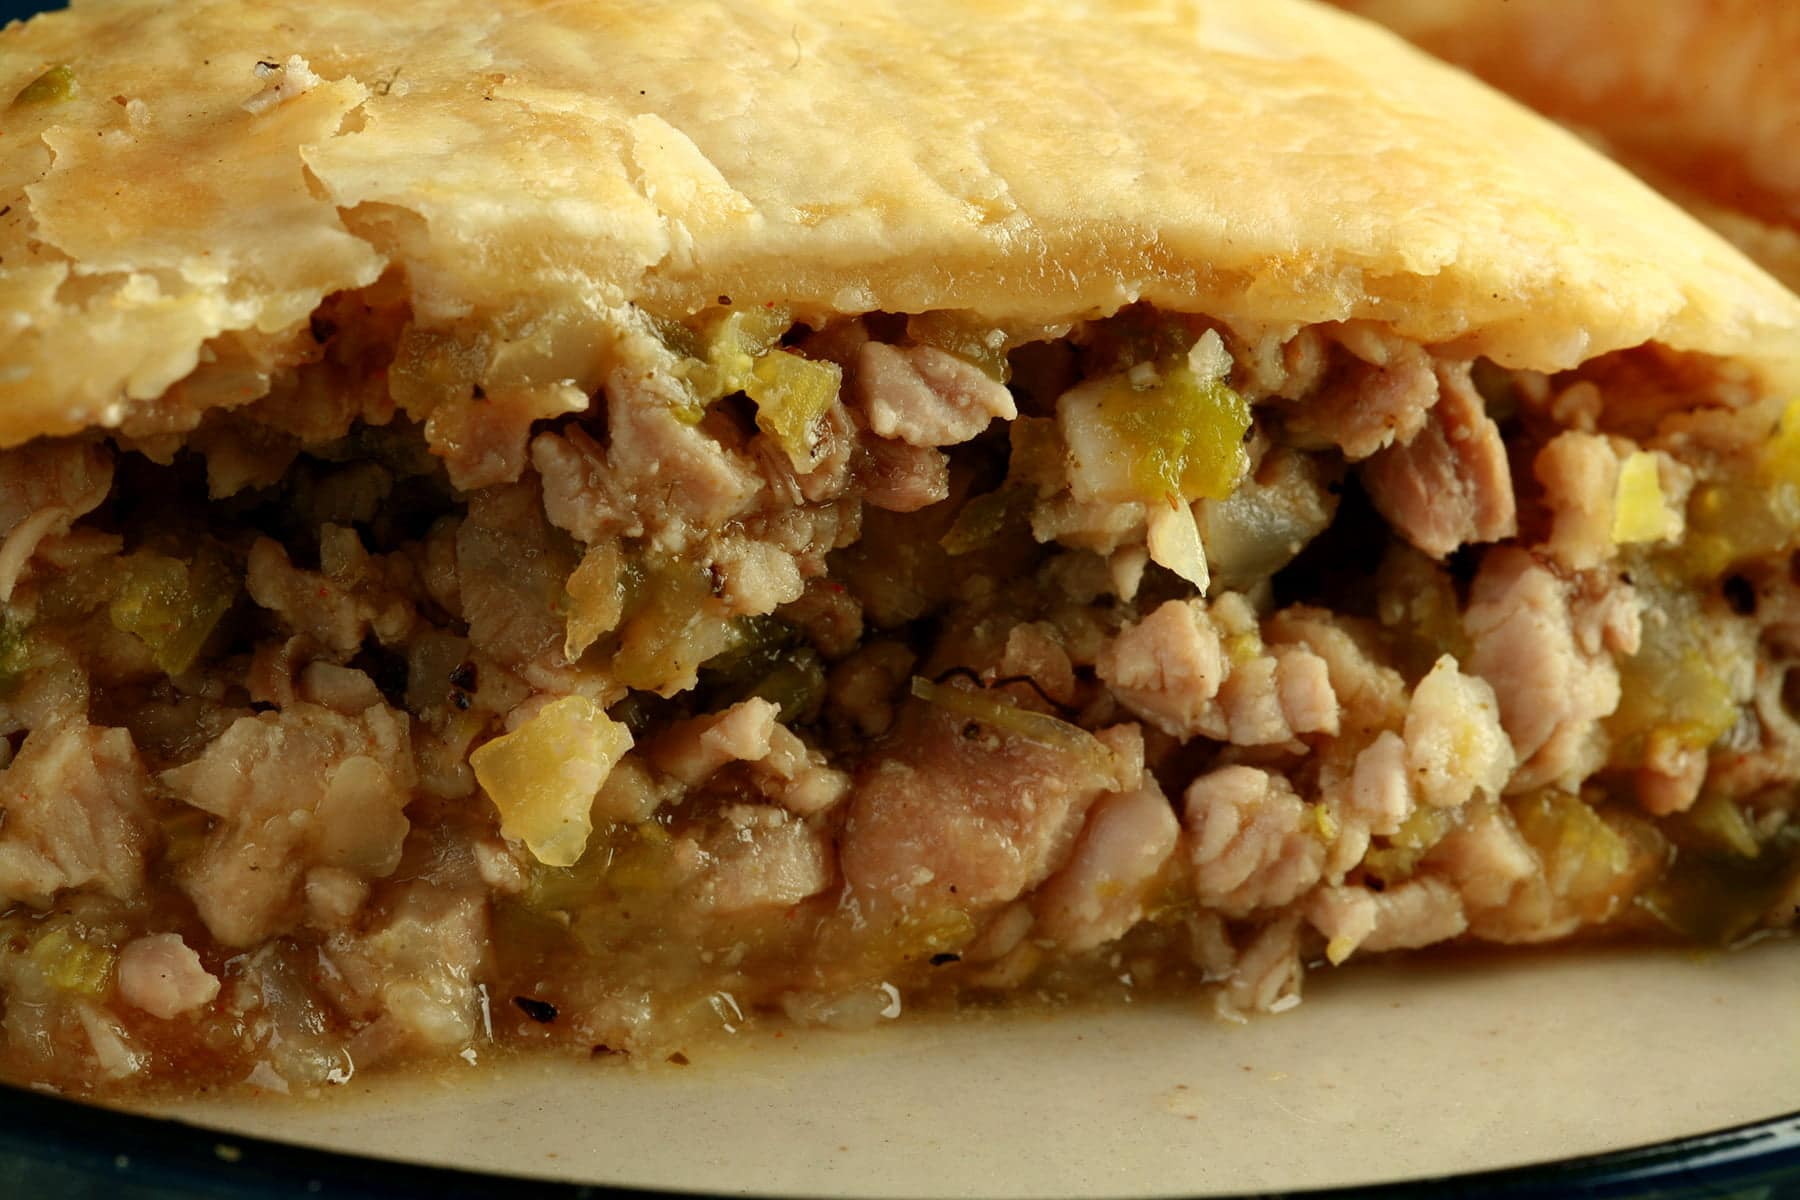 A slice of savory alligator pie, on a small white plate. The filling shows chunks of meat and vegetables, like celery.